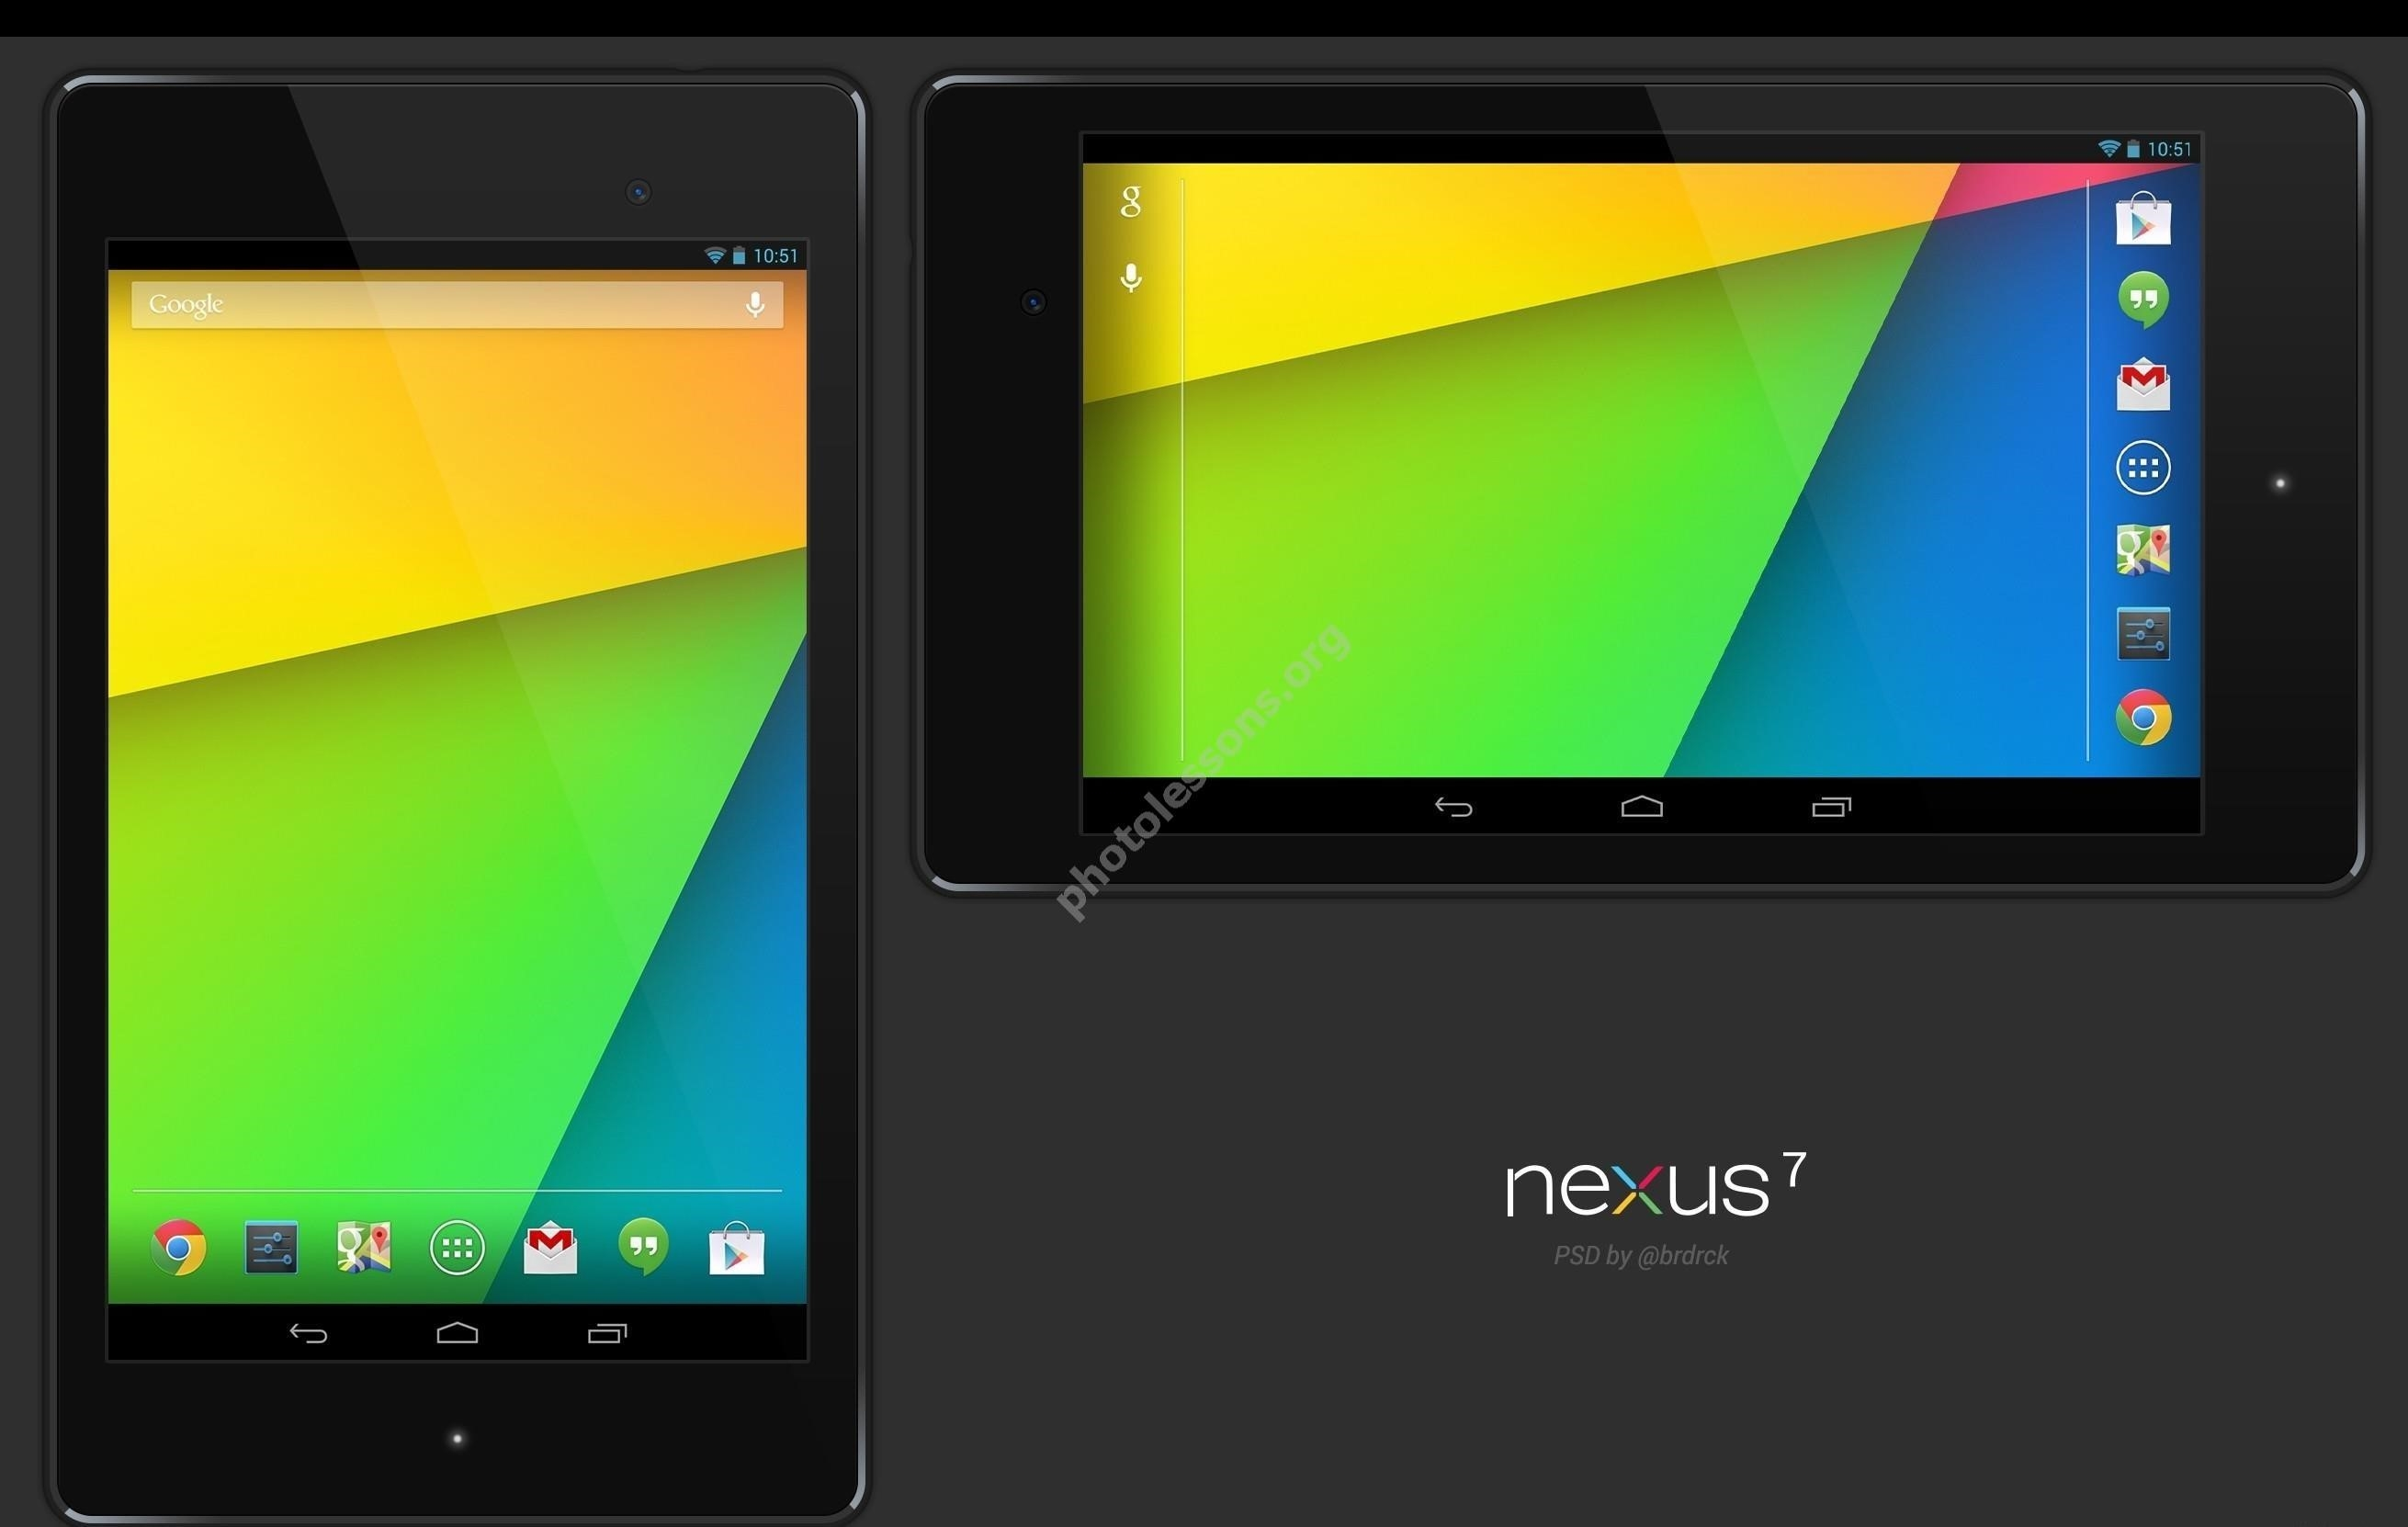 Nexus 7 is to download the source file for Photoshop free